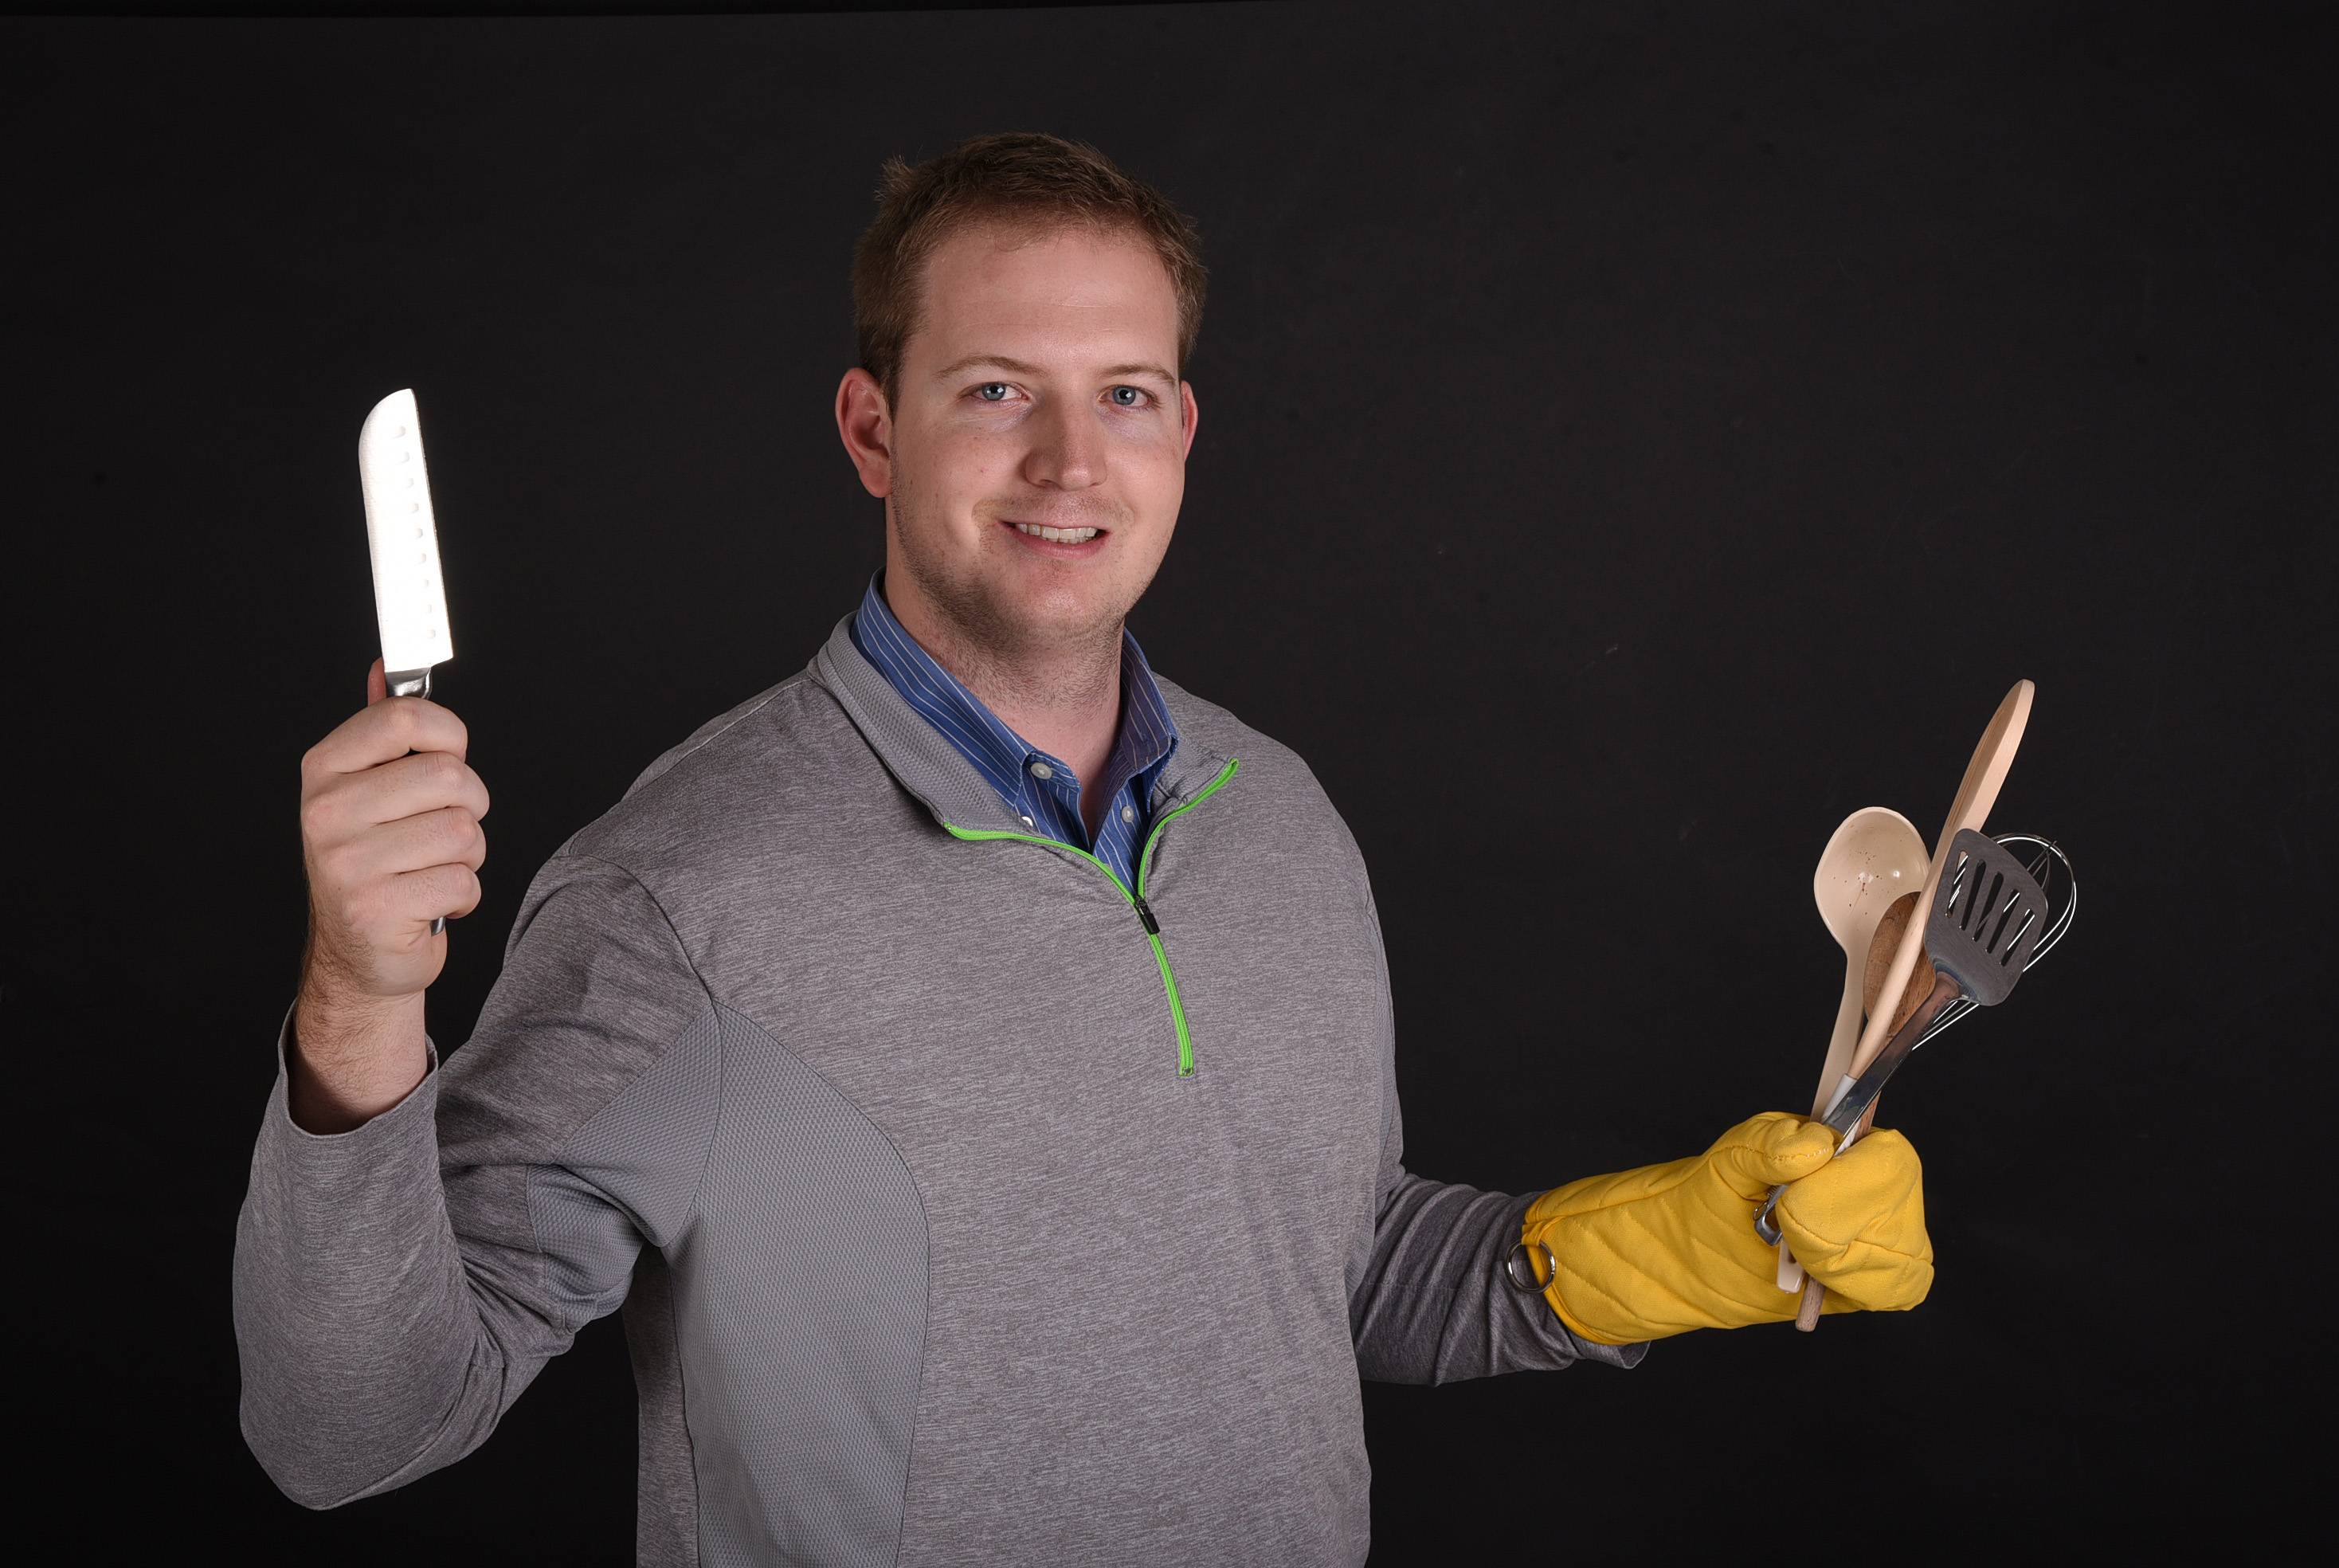 Ben Blake of Winfield has cooking tools at the ready for the Monday, Nov. 13, live cook-off.